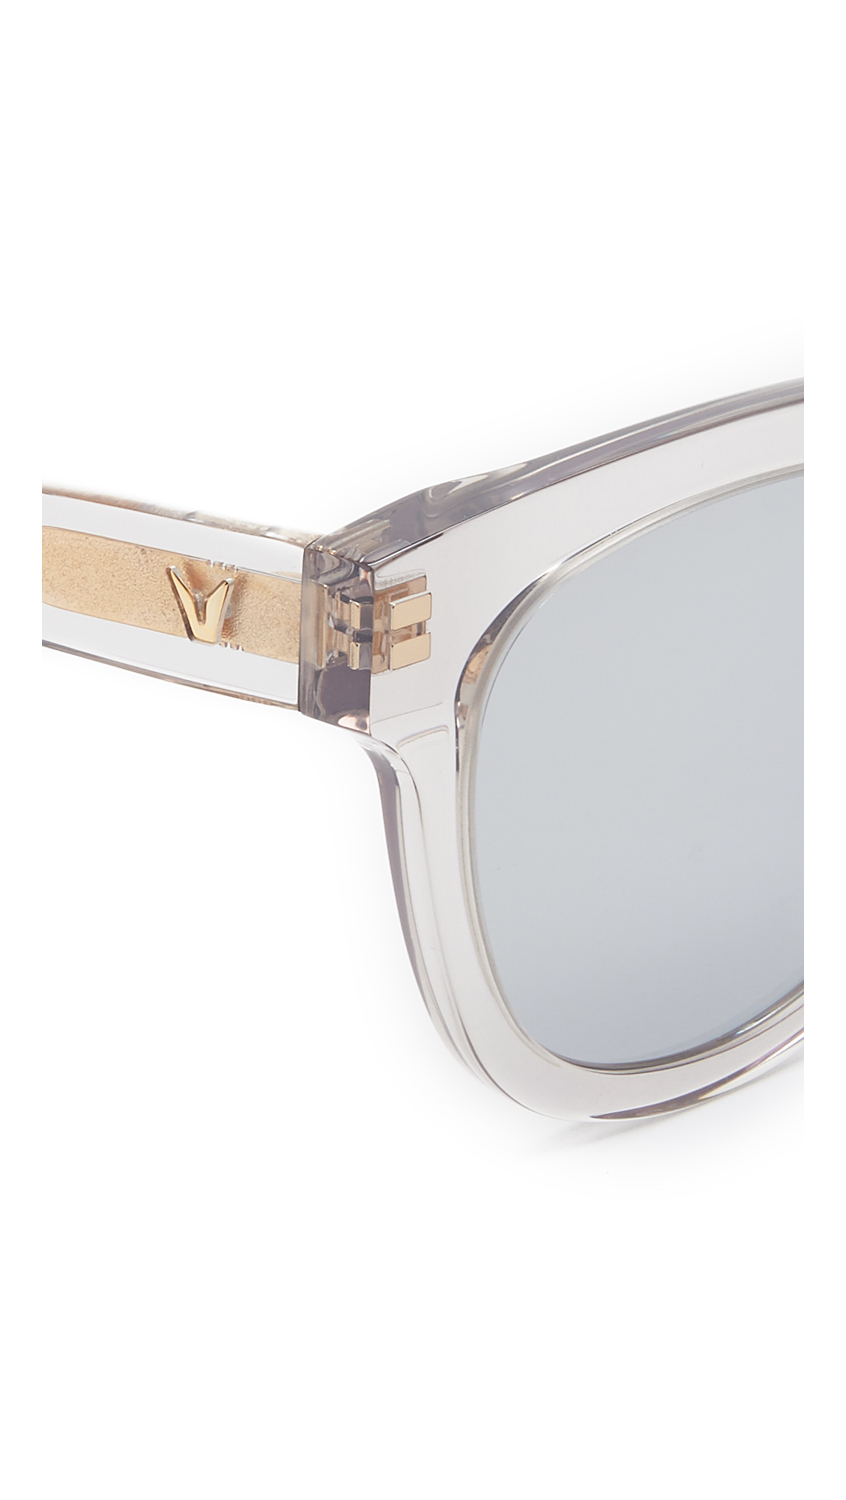 3a1f3a5963 Gentle Monster Roy Sunglasses